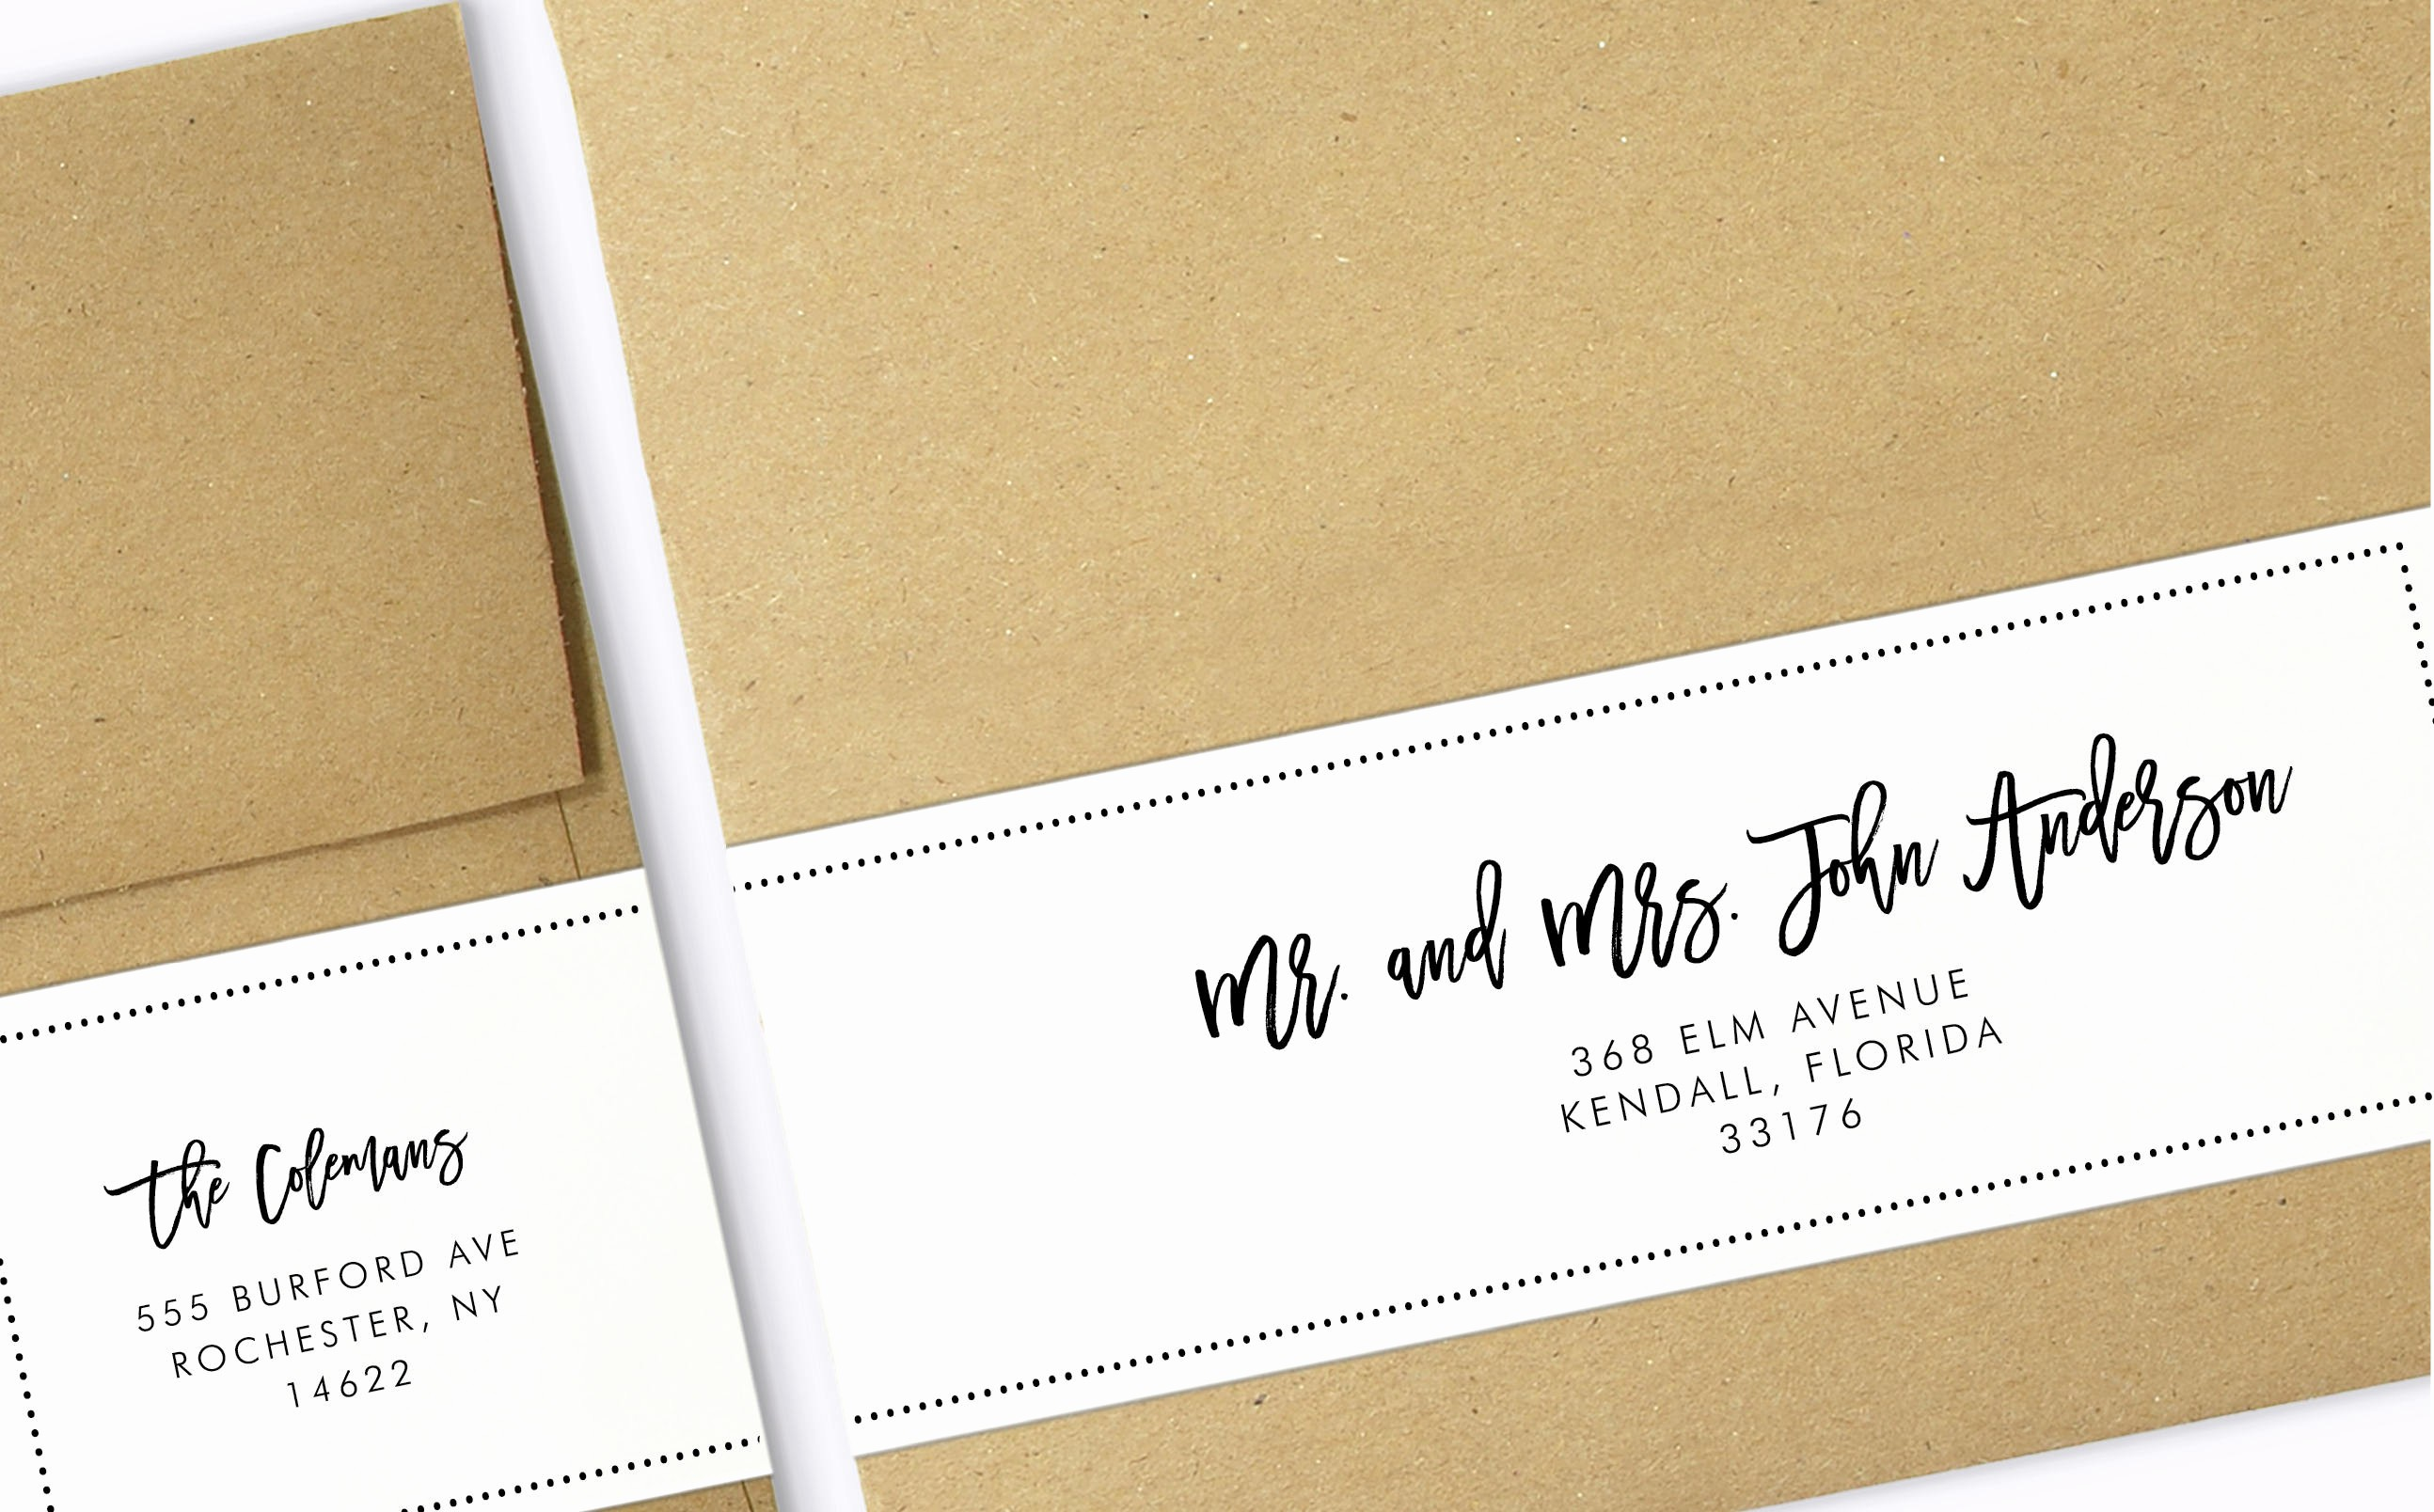 Wedding Address Labels Template Free Luxury Wrap Around Labels Printable Address Labels Wedding